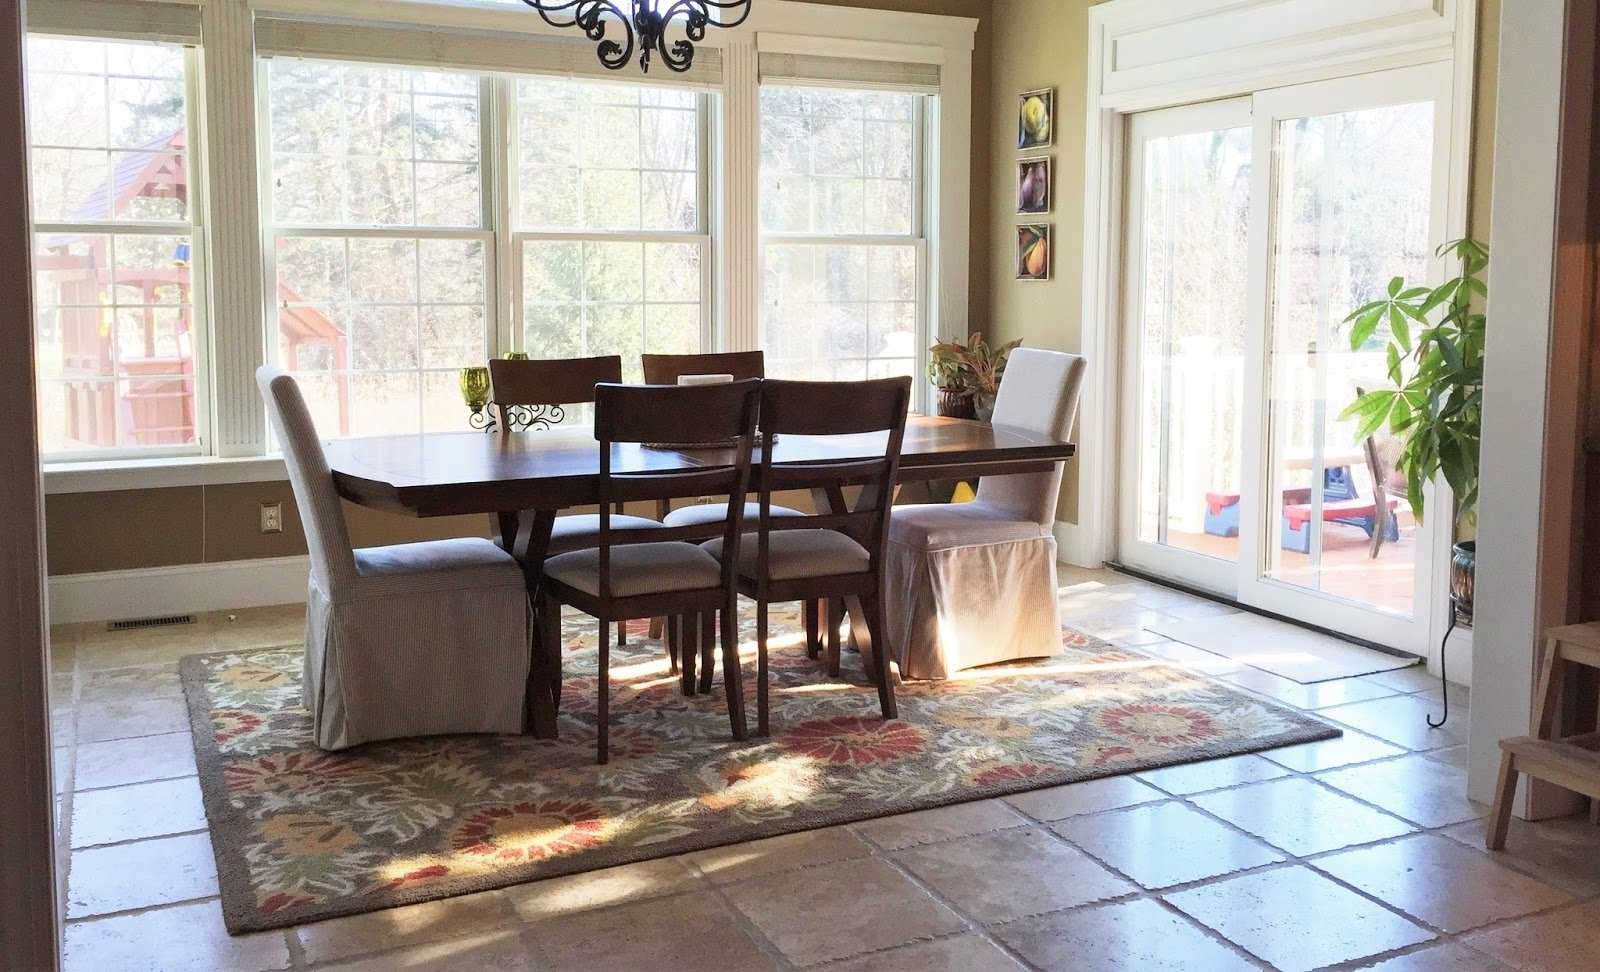 10 Ideal Sunroom Ideas On A Budget fancy sunroom dining room 30 about remodel home office design 2020